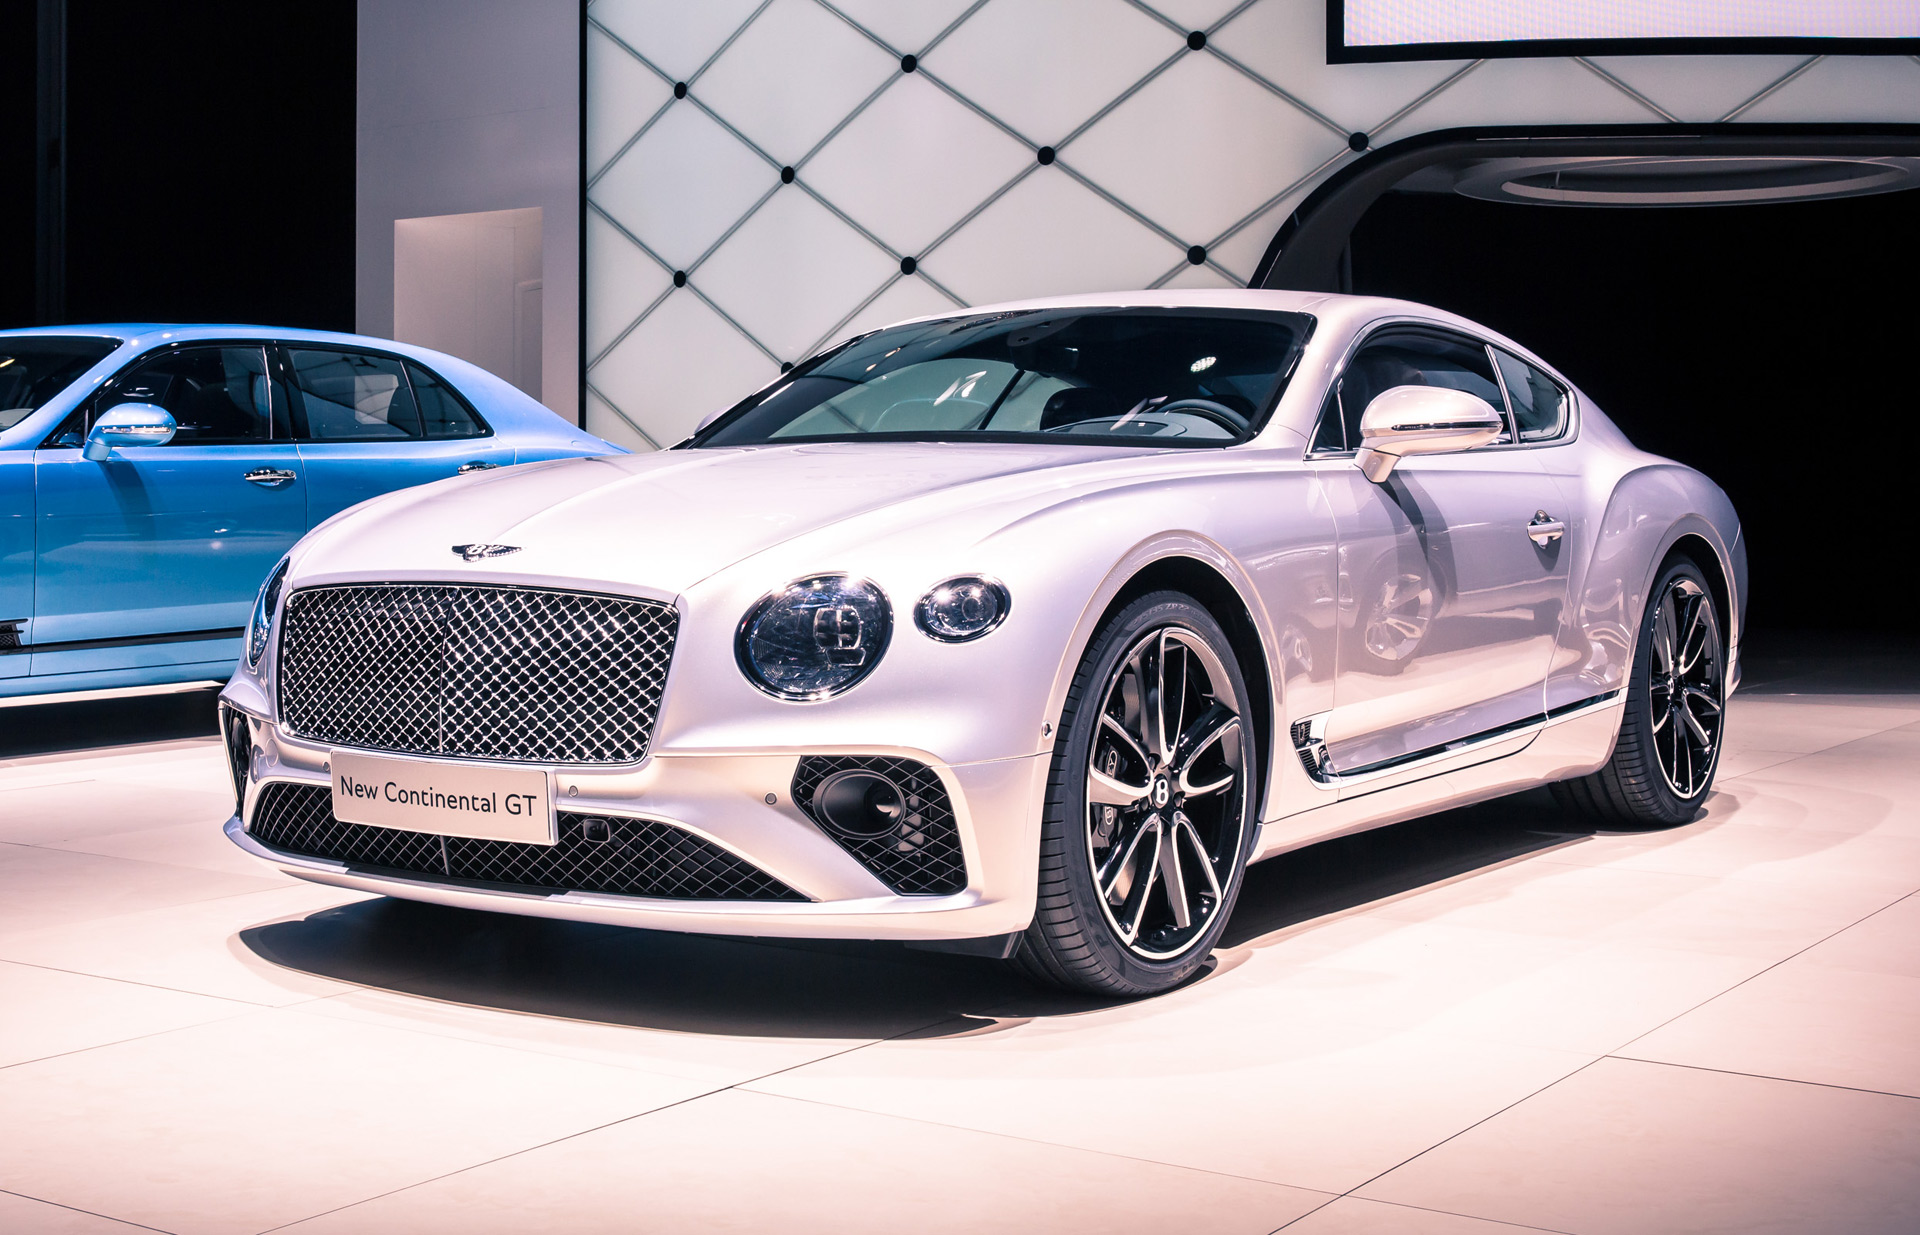 2019 Bentley Continental Gt Preview Concept Looks Trick